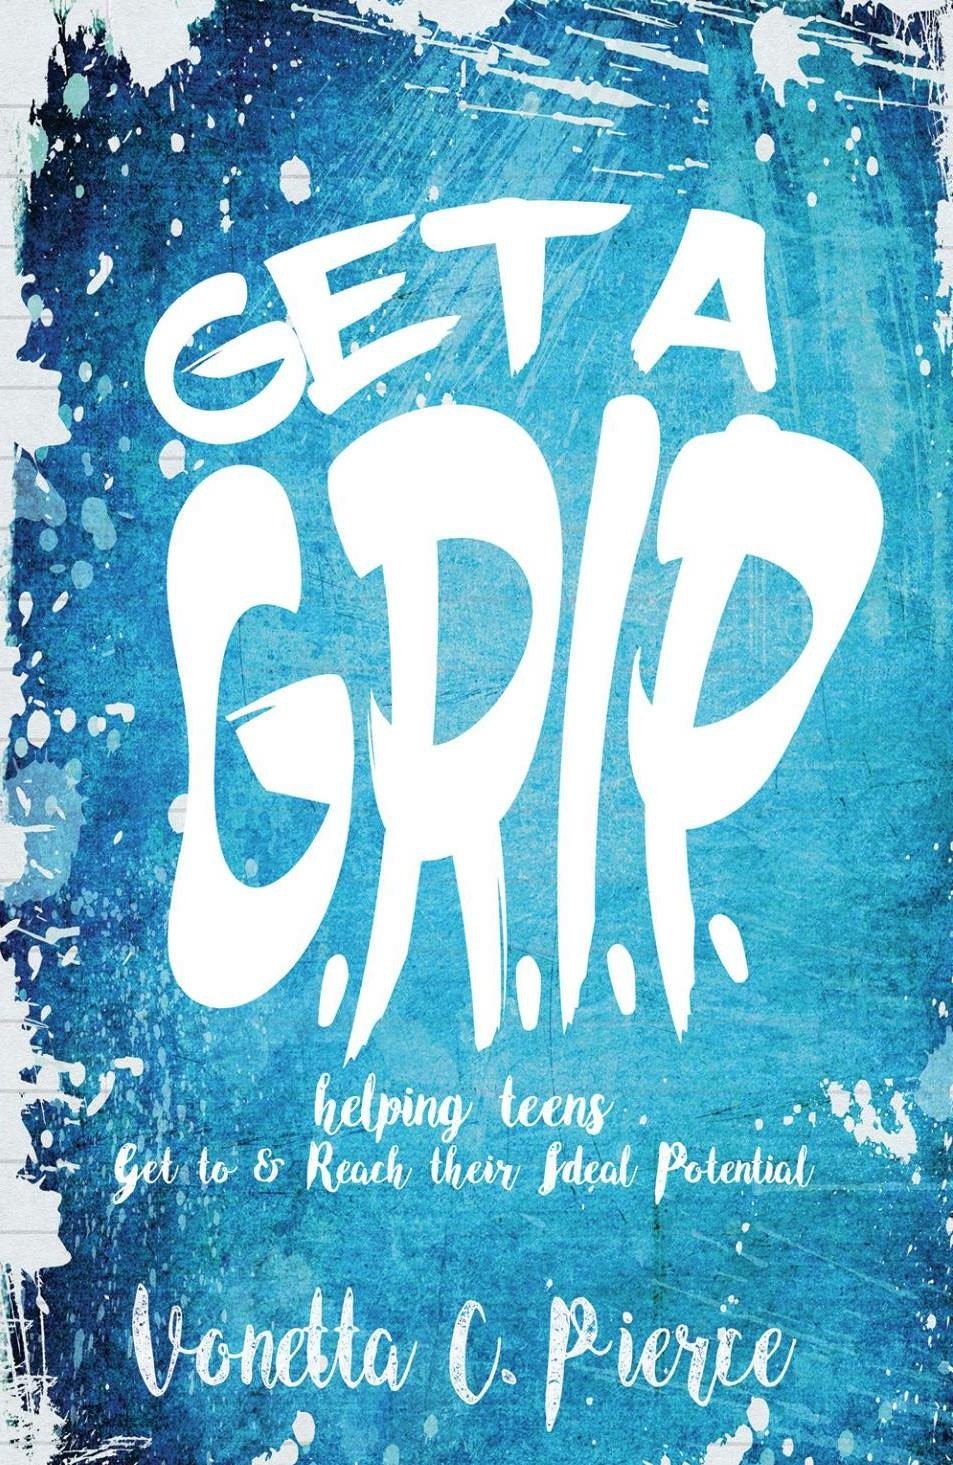 Are you between the age of 12-17? - What exactly do you need to GET A GRIP on?It's time to get a grip on your life! What is it that you want from your life?... Get a grip on life by getting a grip on yourself.-excerpt from the acclaimed book